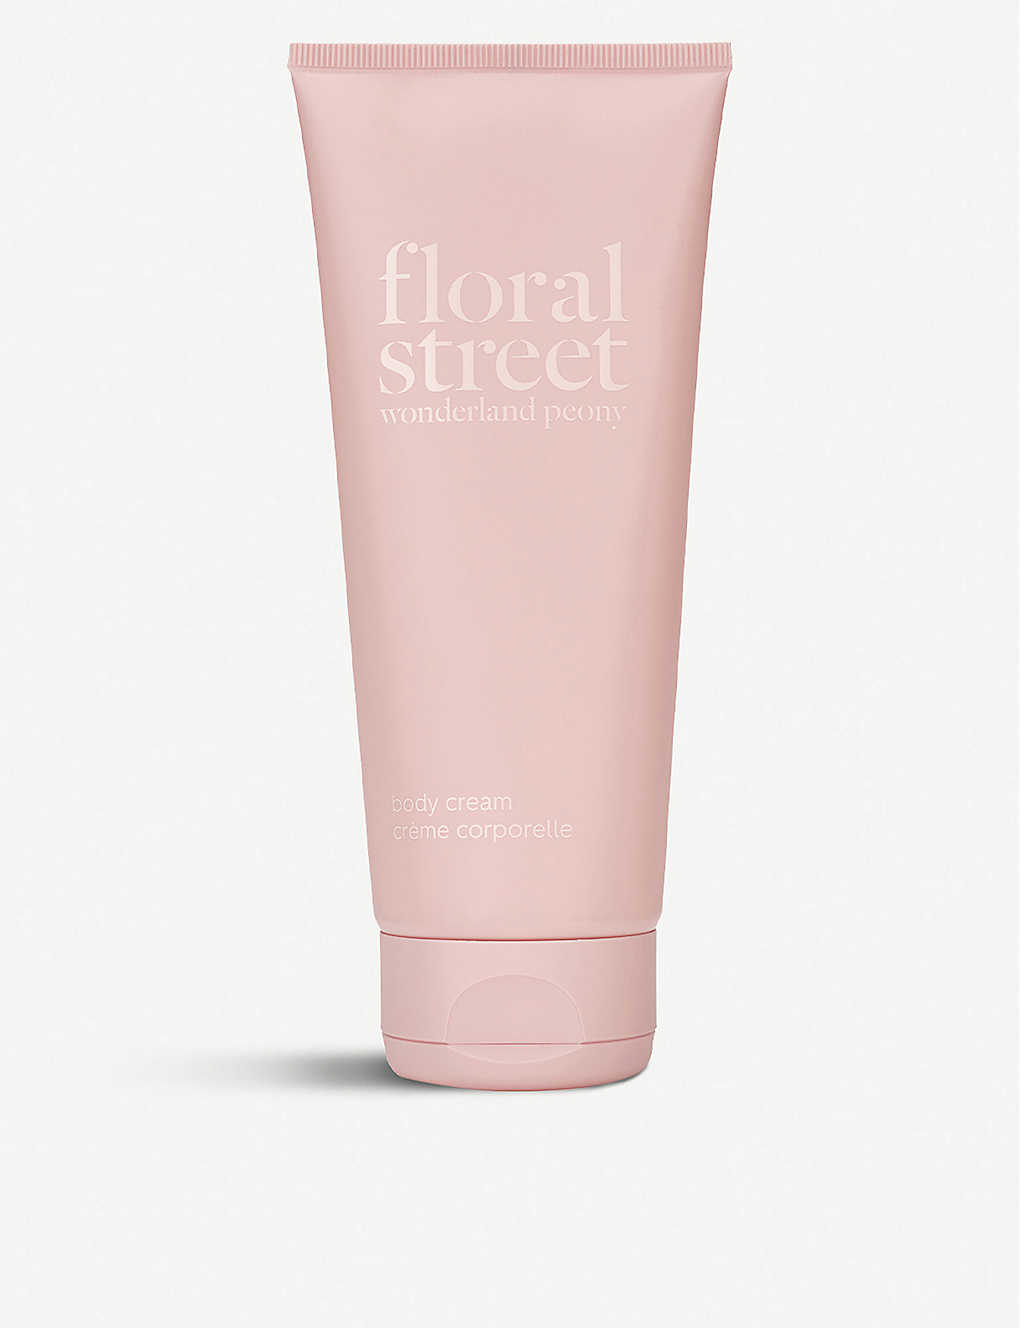 FLORAL STREET: Wonderland Peony Body Cream 200ml